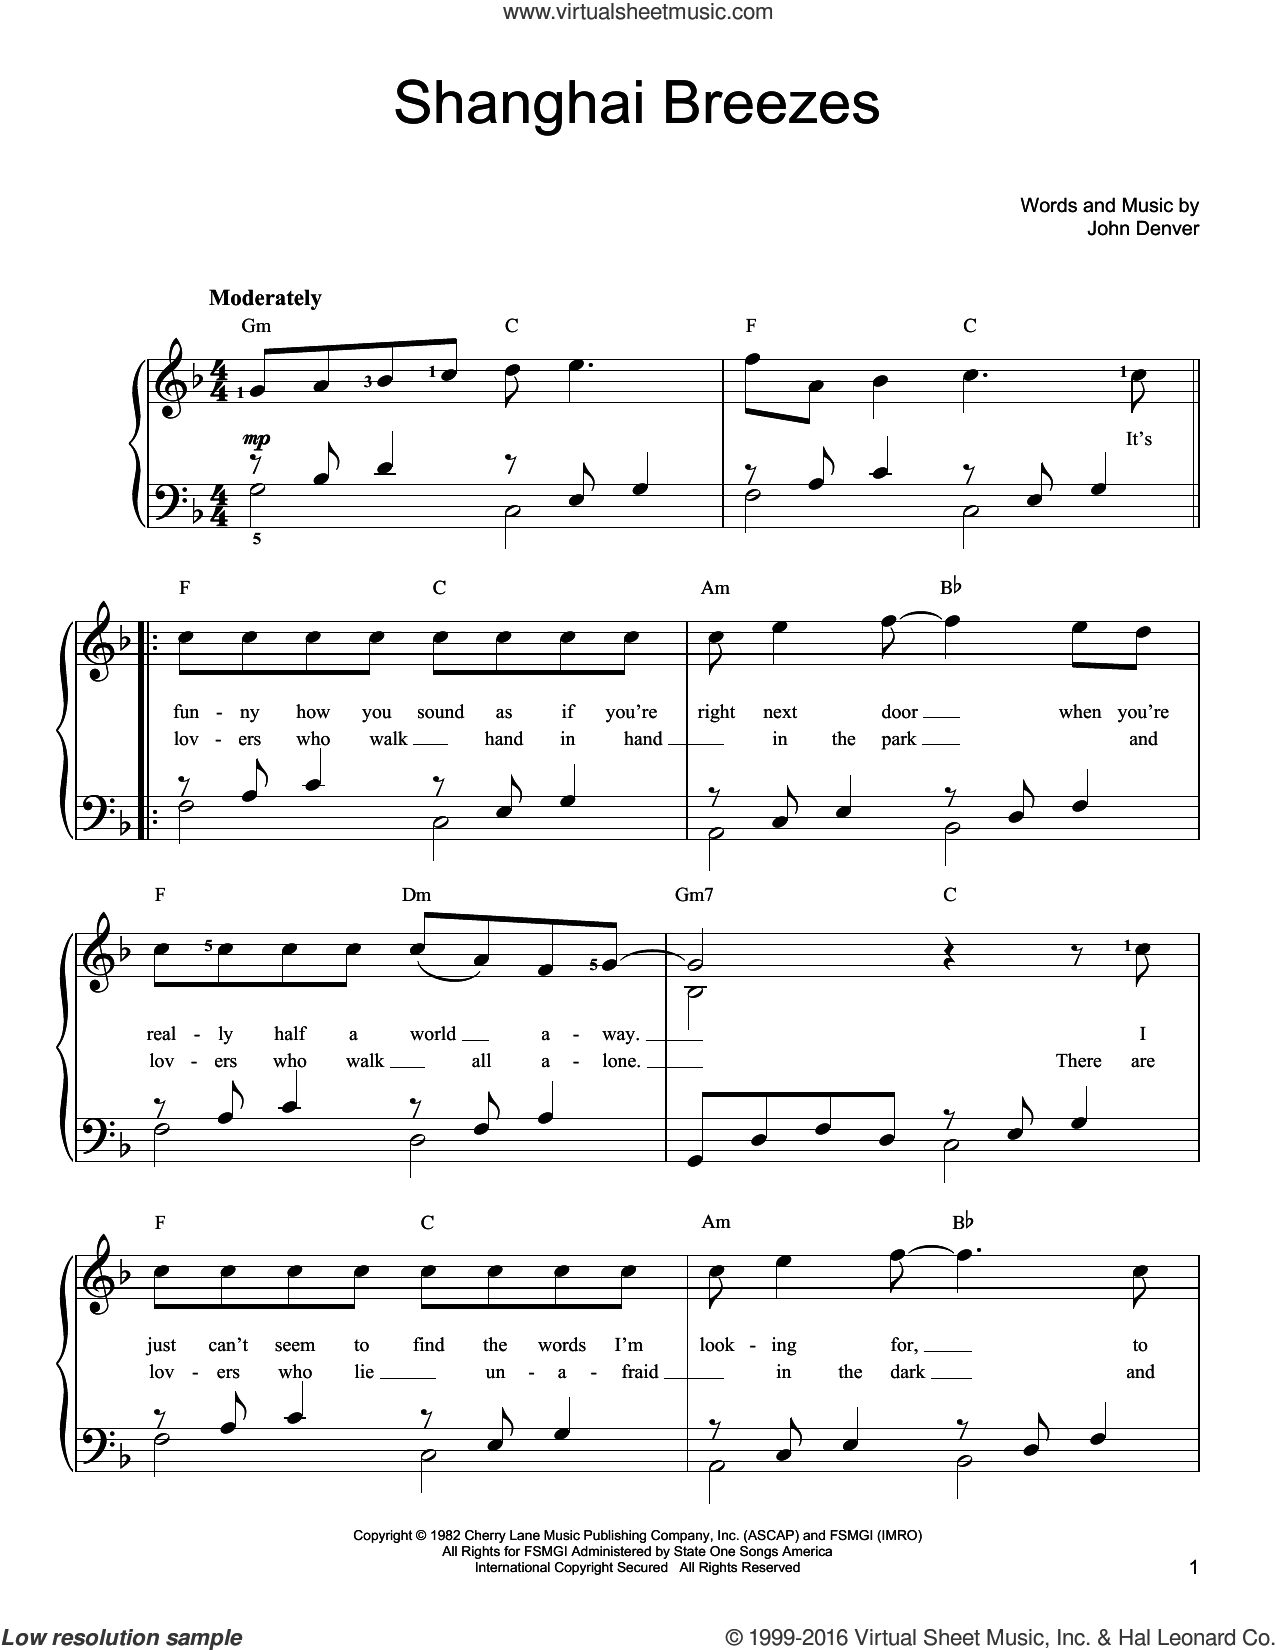 Shanghai Breezes sheet music for piano solo by John Denver, easy skill level